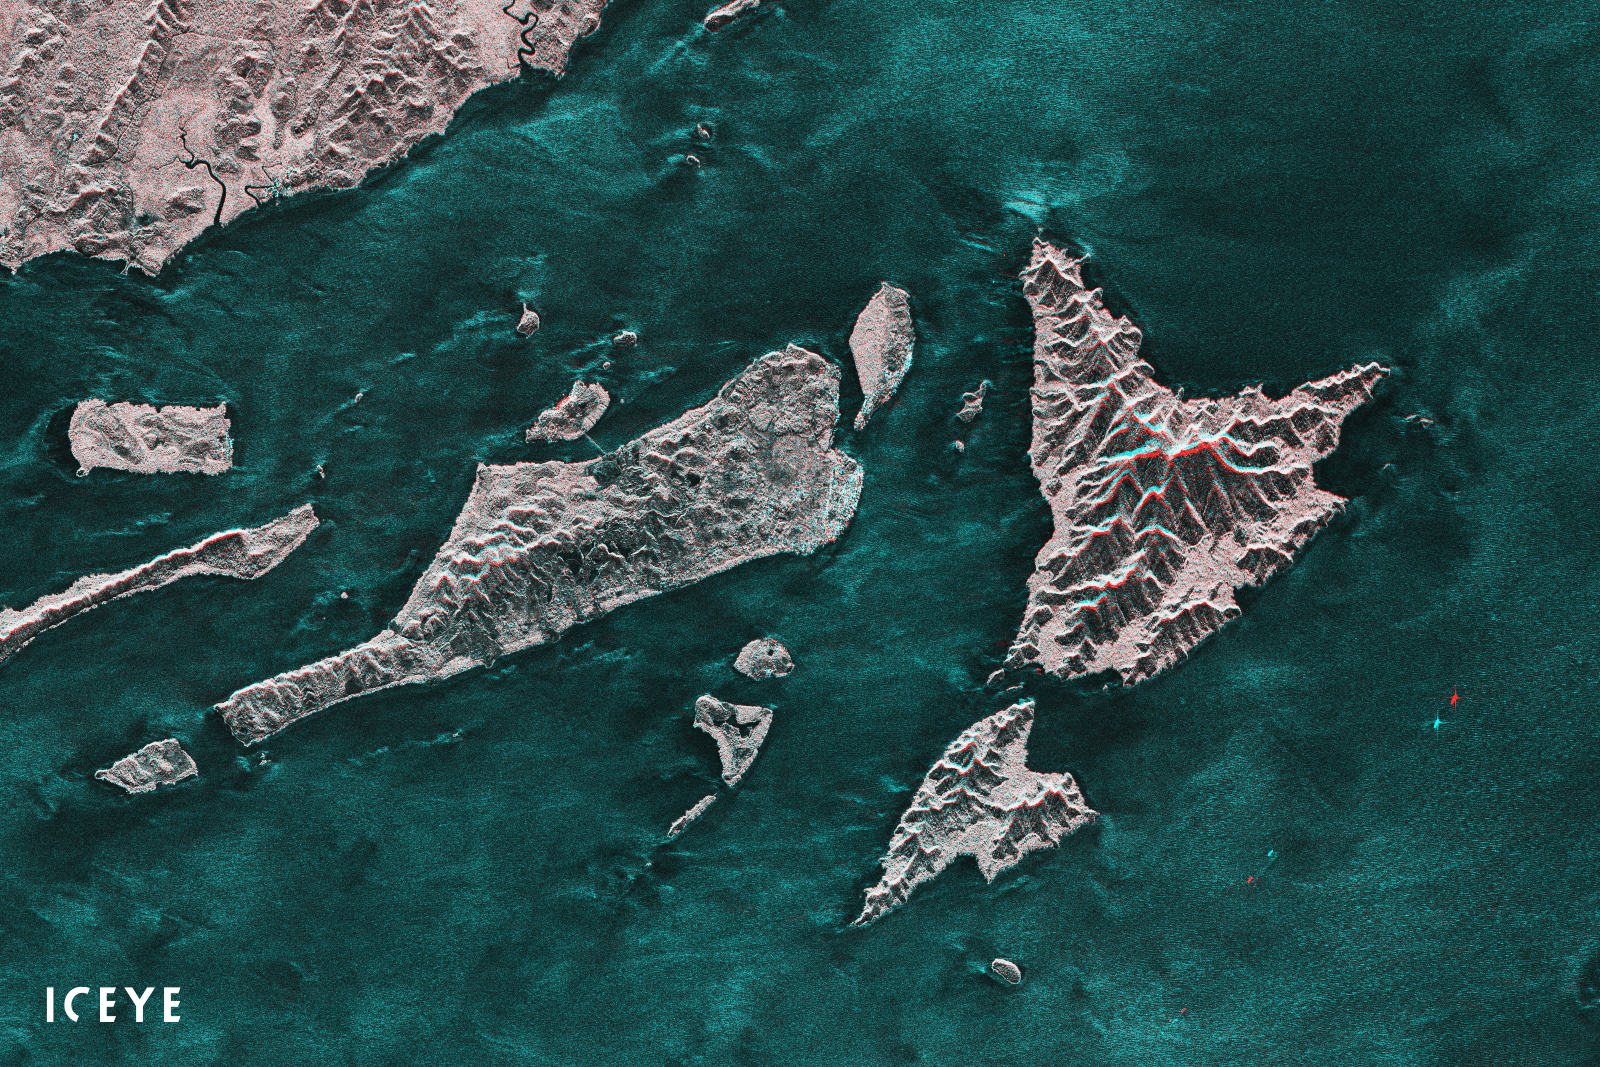 ICEYE-July-2019-satellites-Indonesia-2-images-within-minutes-from-each-other  - SpaceNews com